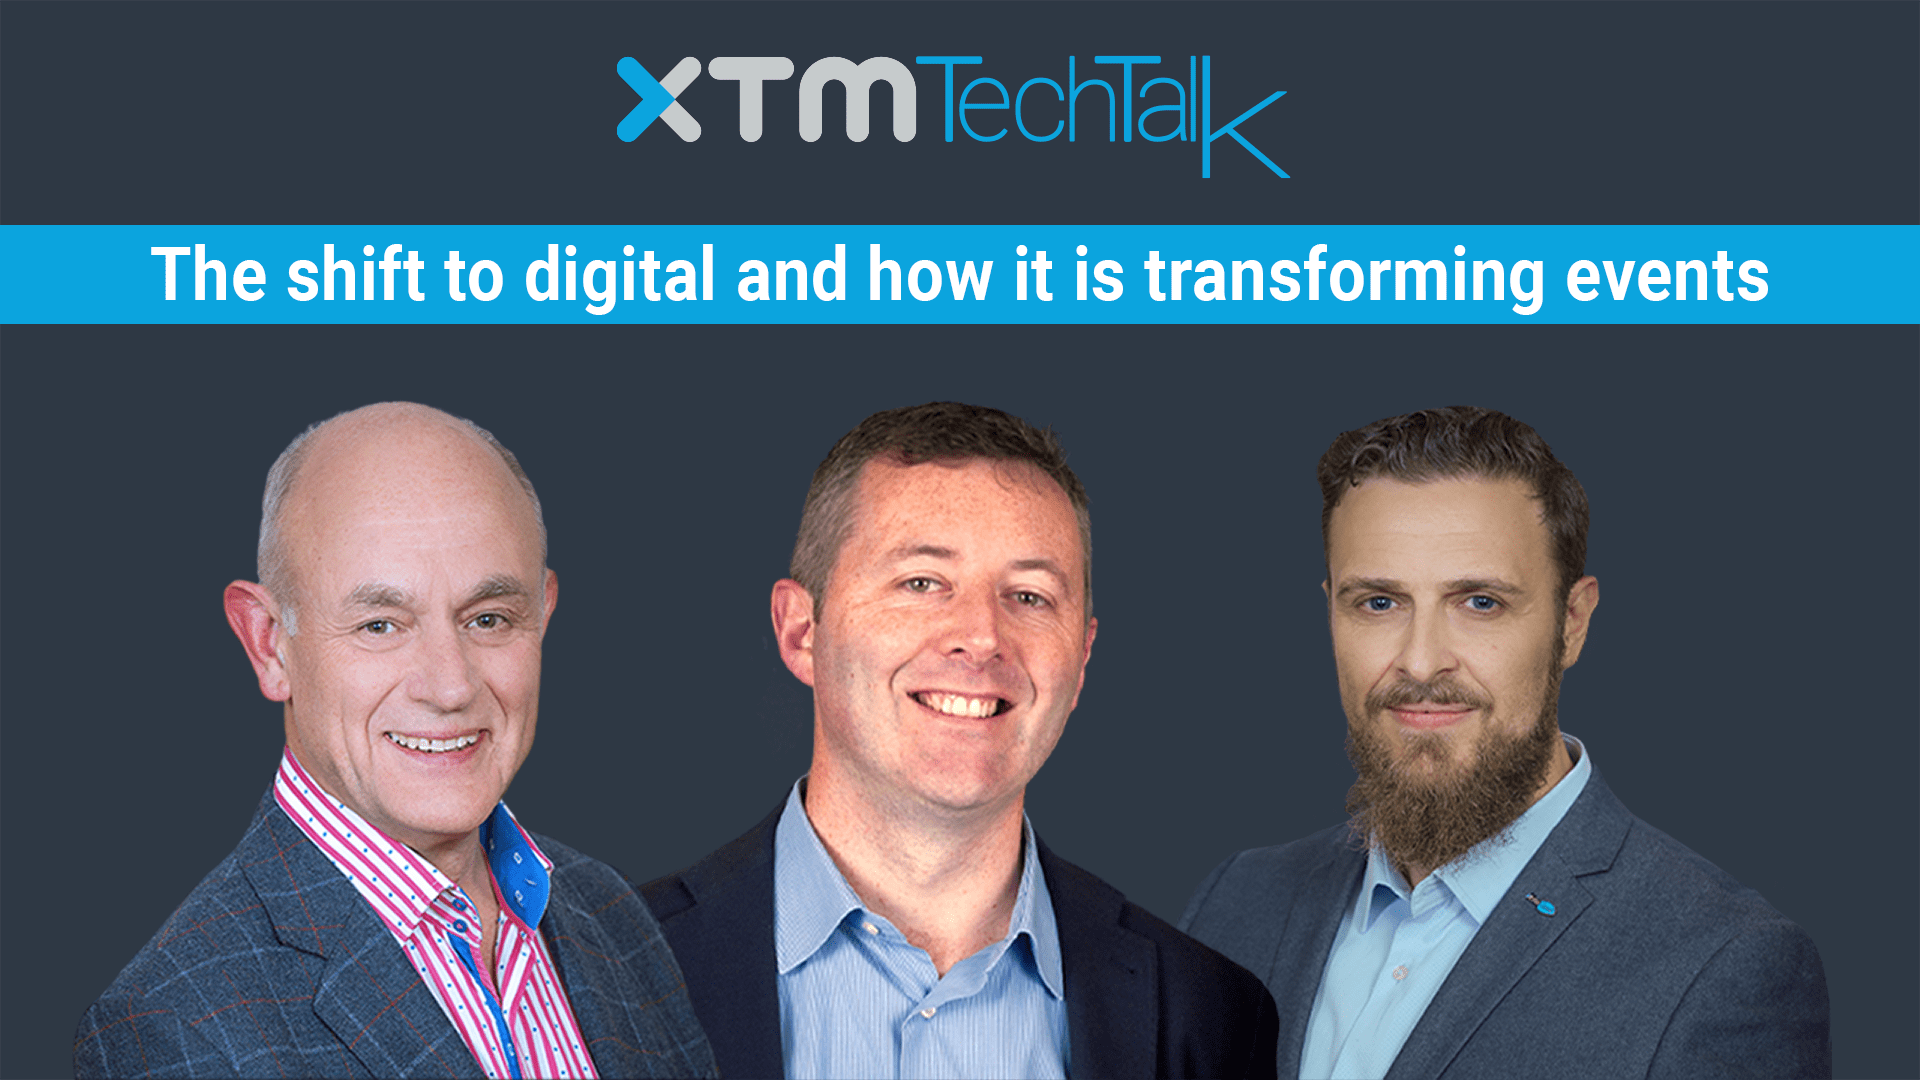 The shift to digital – XTM LIVEStream